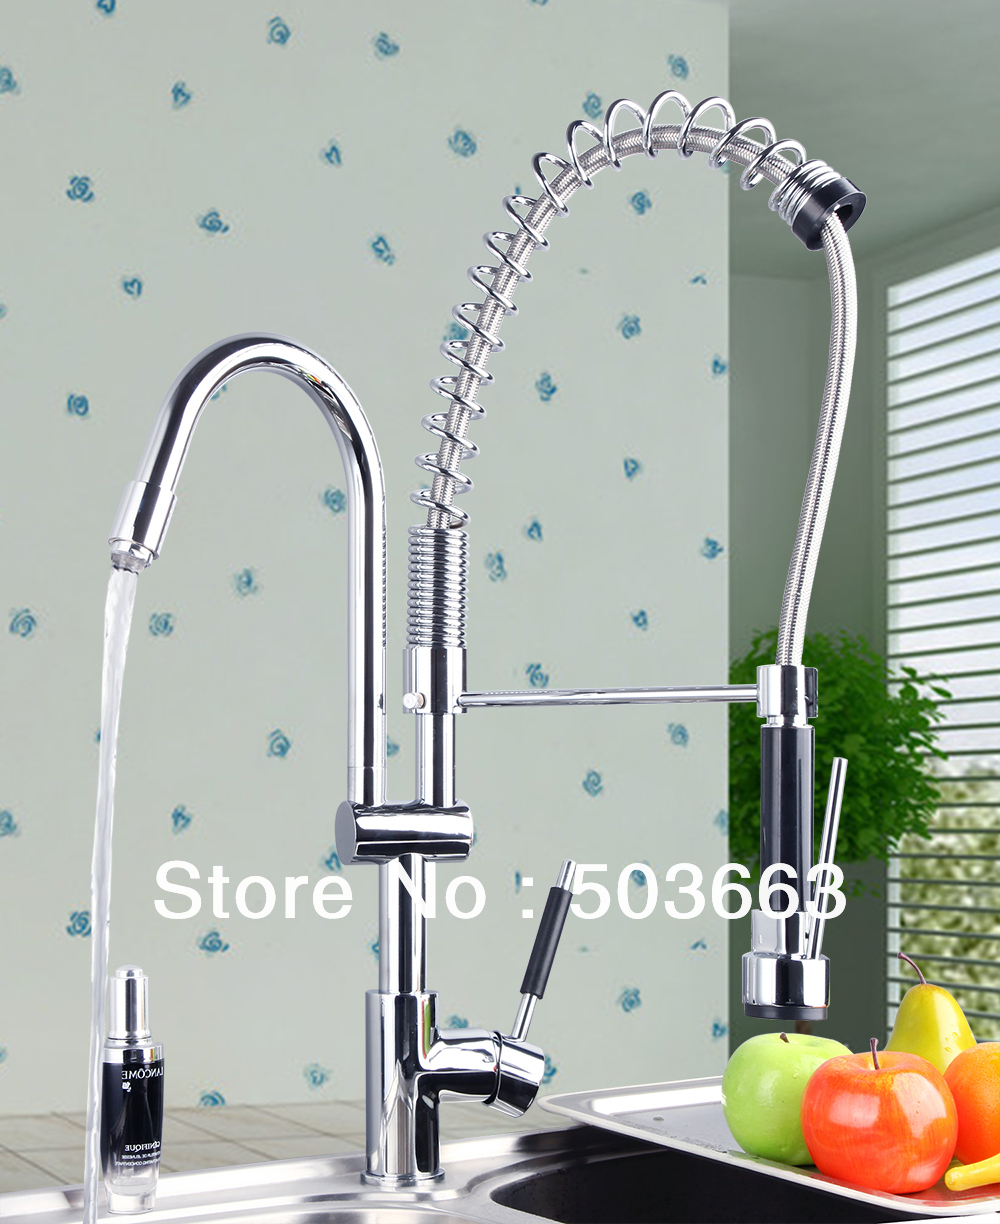 Double Handles Free Chrome Brass Water Kitchen Faucet Swivel Spout Pull Out Vessel Sink Single Handle Mixer Tap MF-268<br><br>Aliexpress